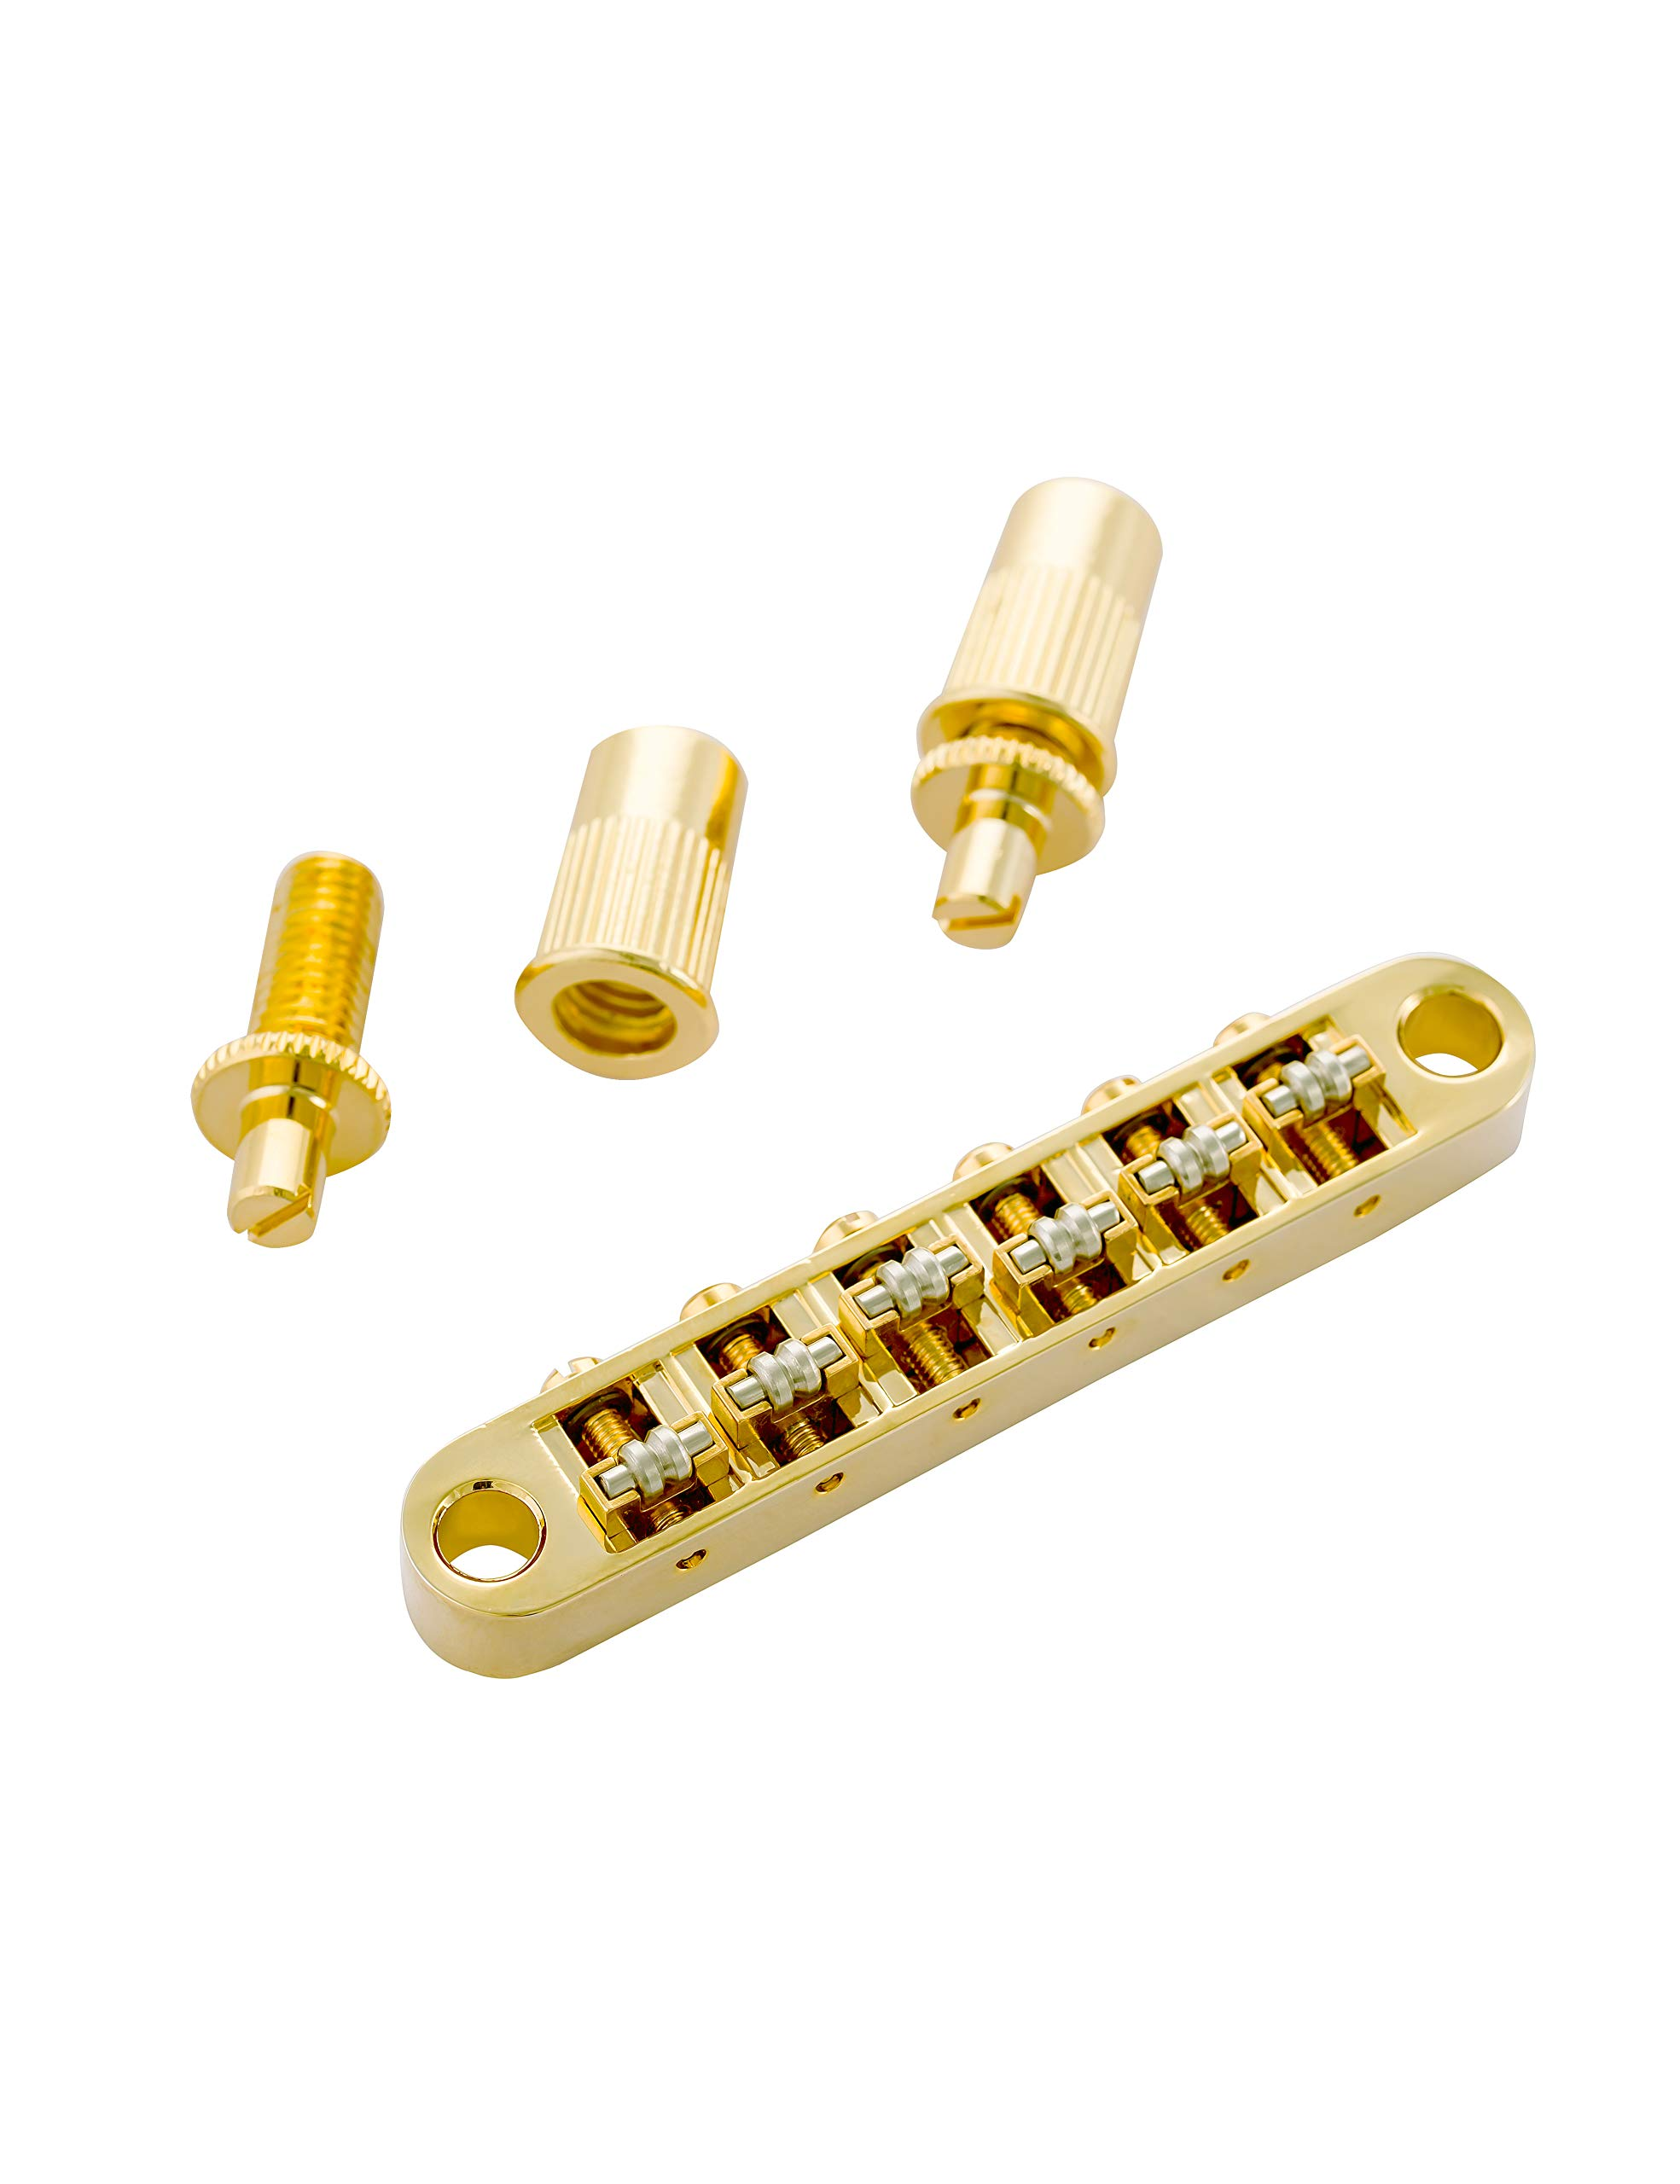 Guyker Guitar Tune-O-Matic Roller Saddle Bridge for Gibson EPI Les Paul LP SG Style 6 String ElectricGuitar Replacement Part - Golden